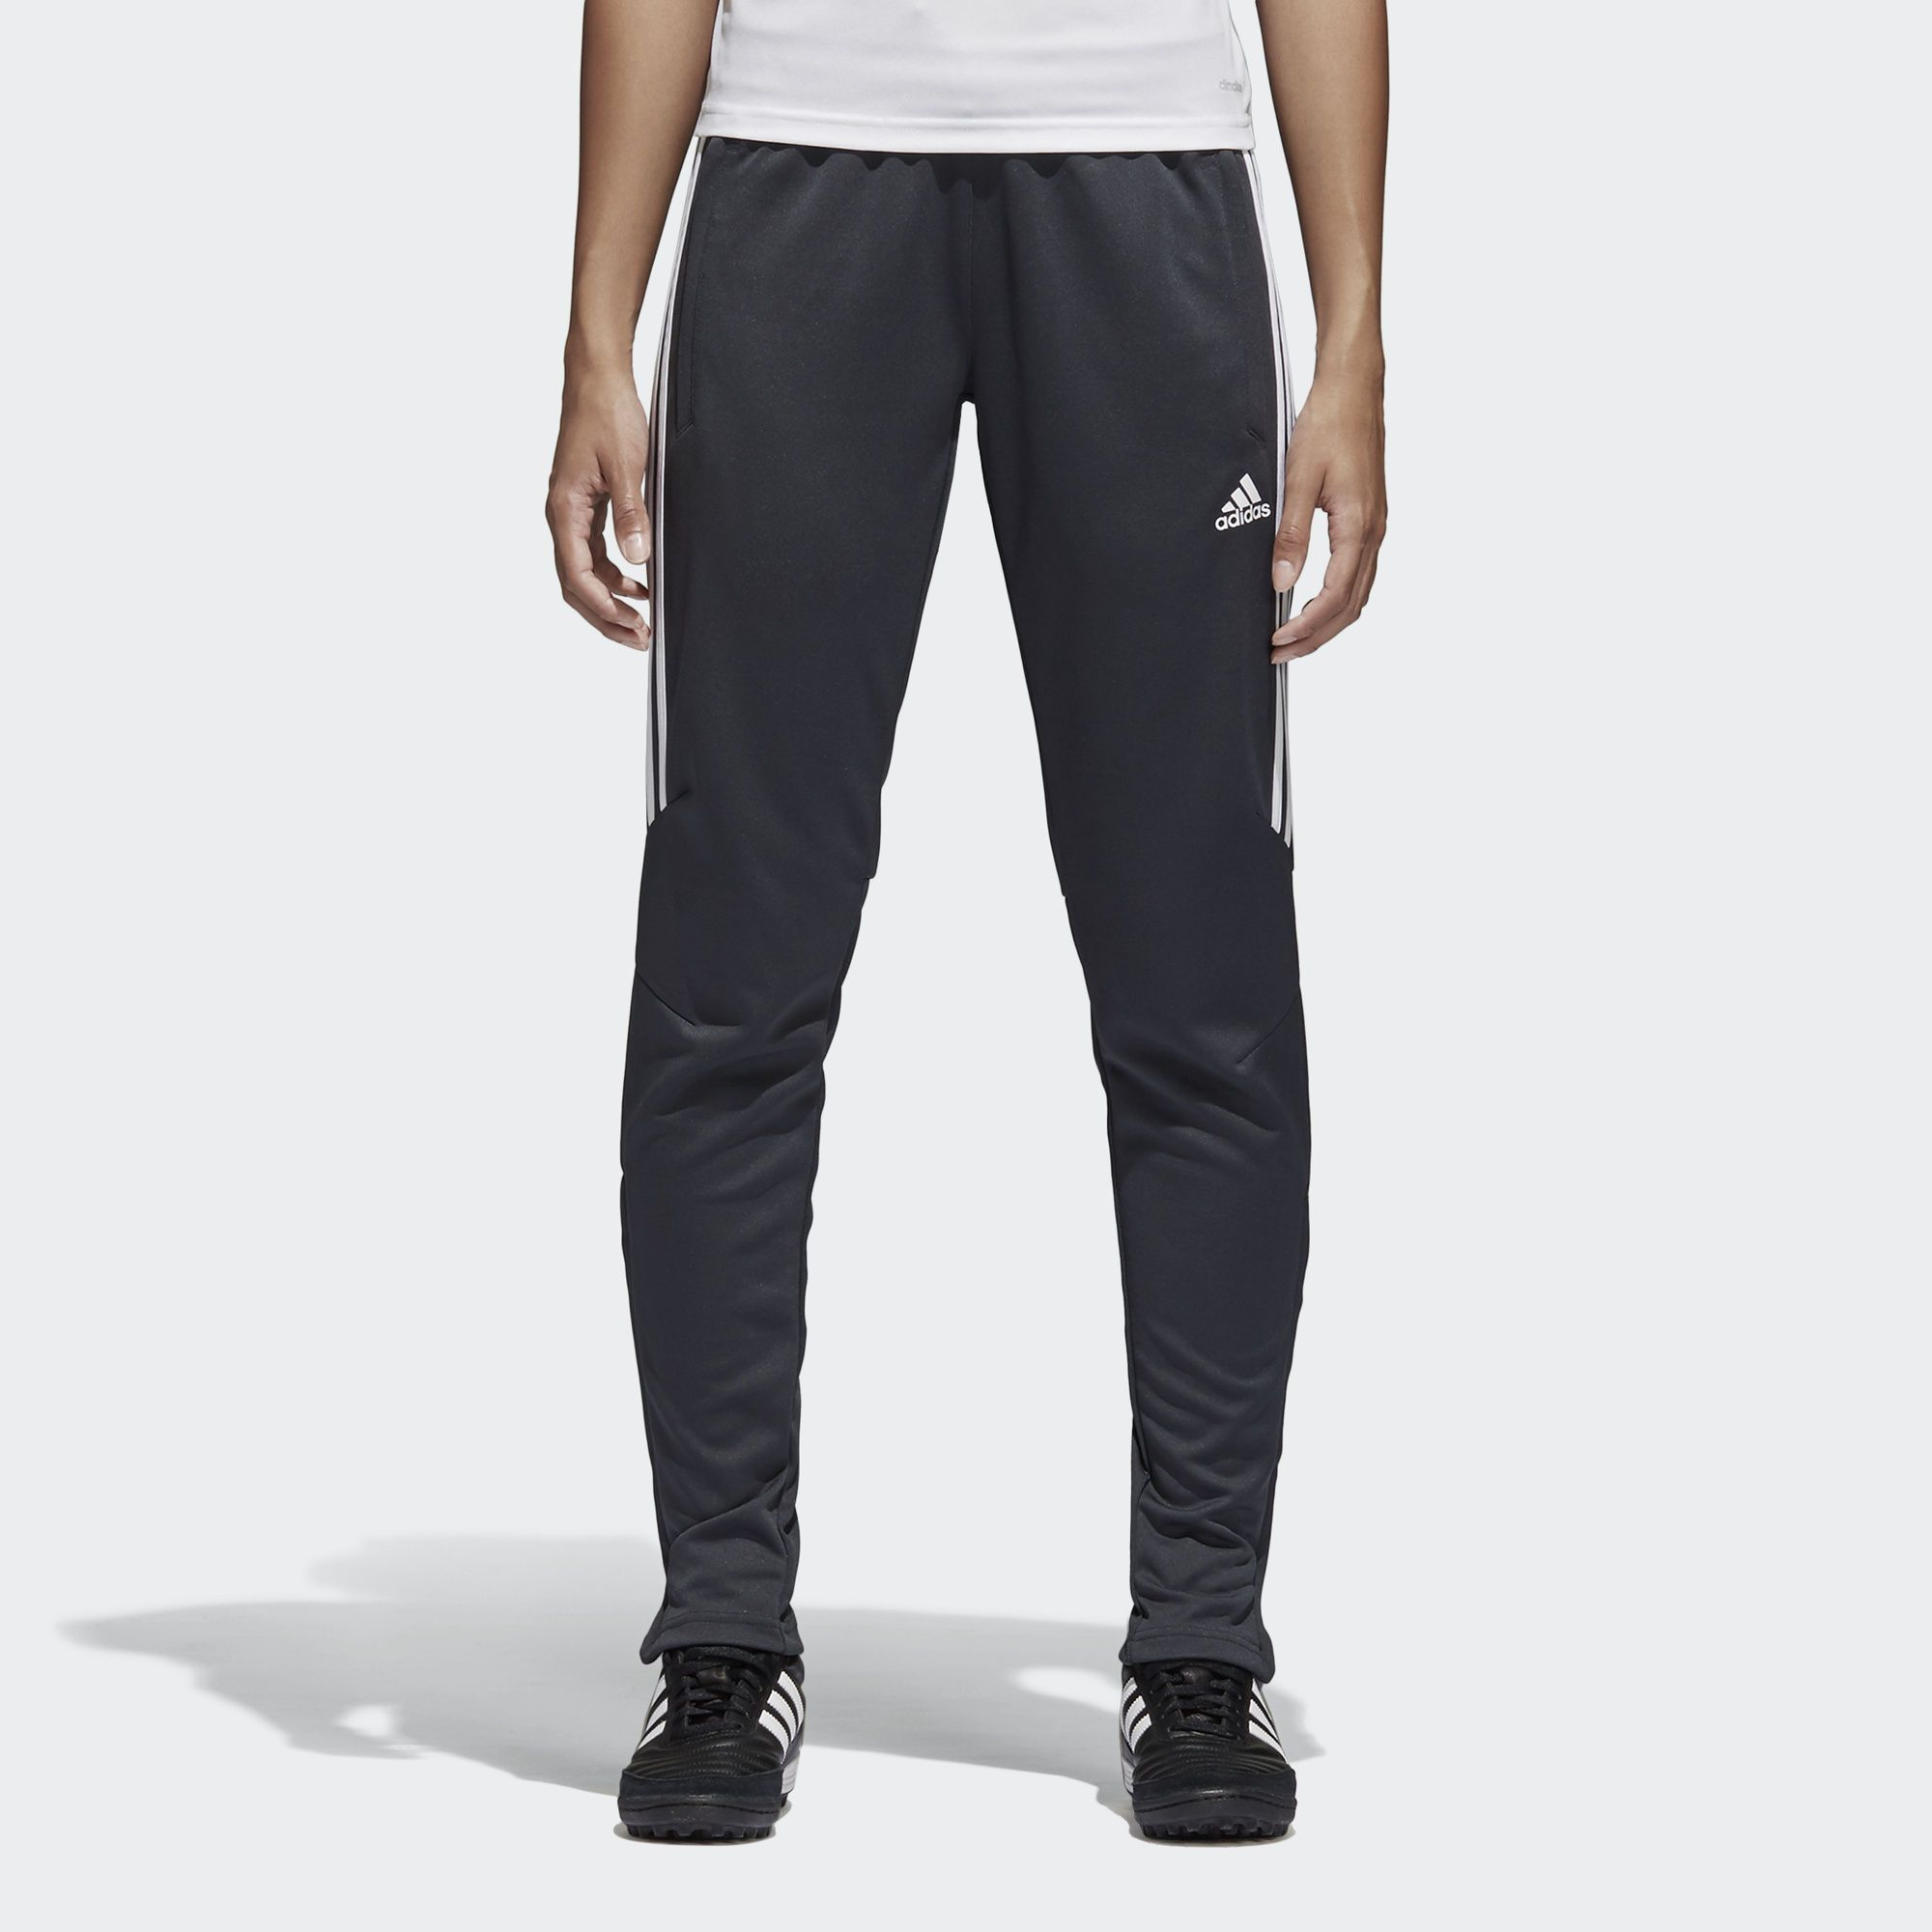 ff5ceb13983a These women s soccer training pants help you warm up without overheating.  Featuring ventilated climacool® and mesh inserts for maximum breathability